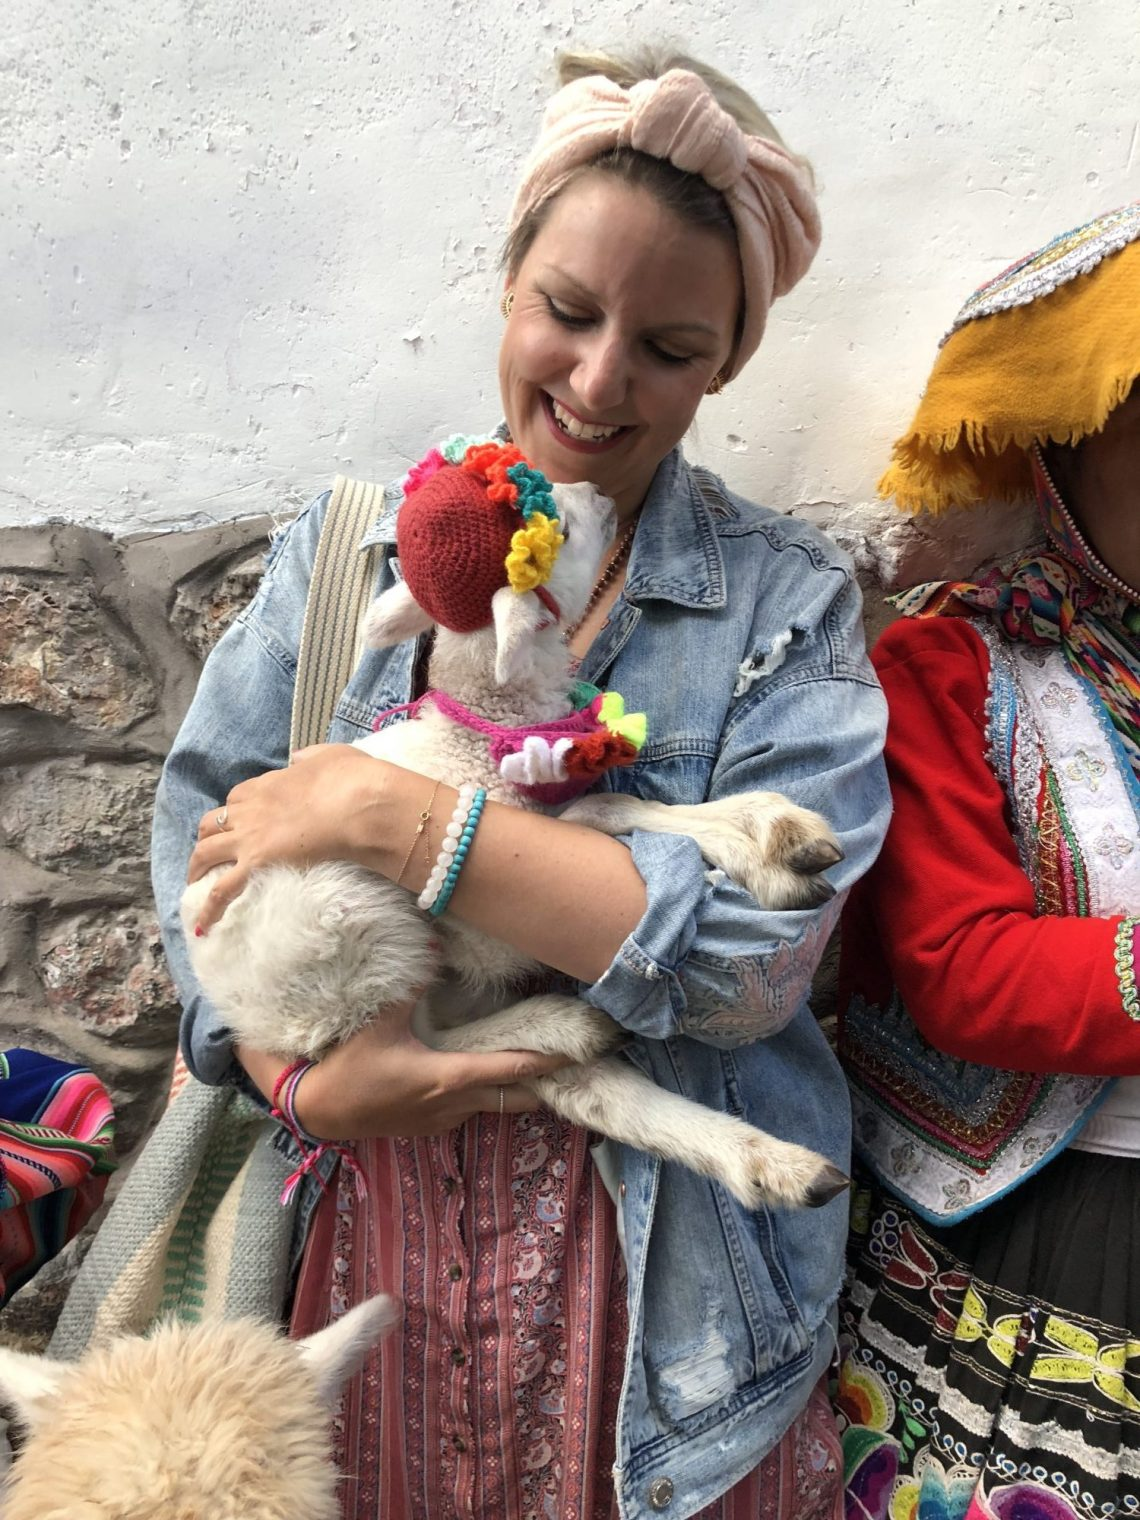 Baby Llamb in Cusco, Peru - East Coast Mermaid